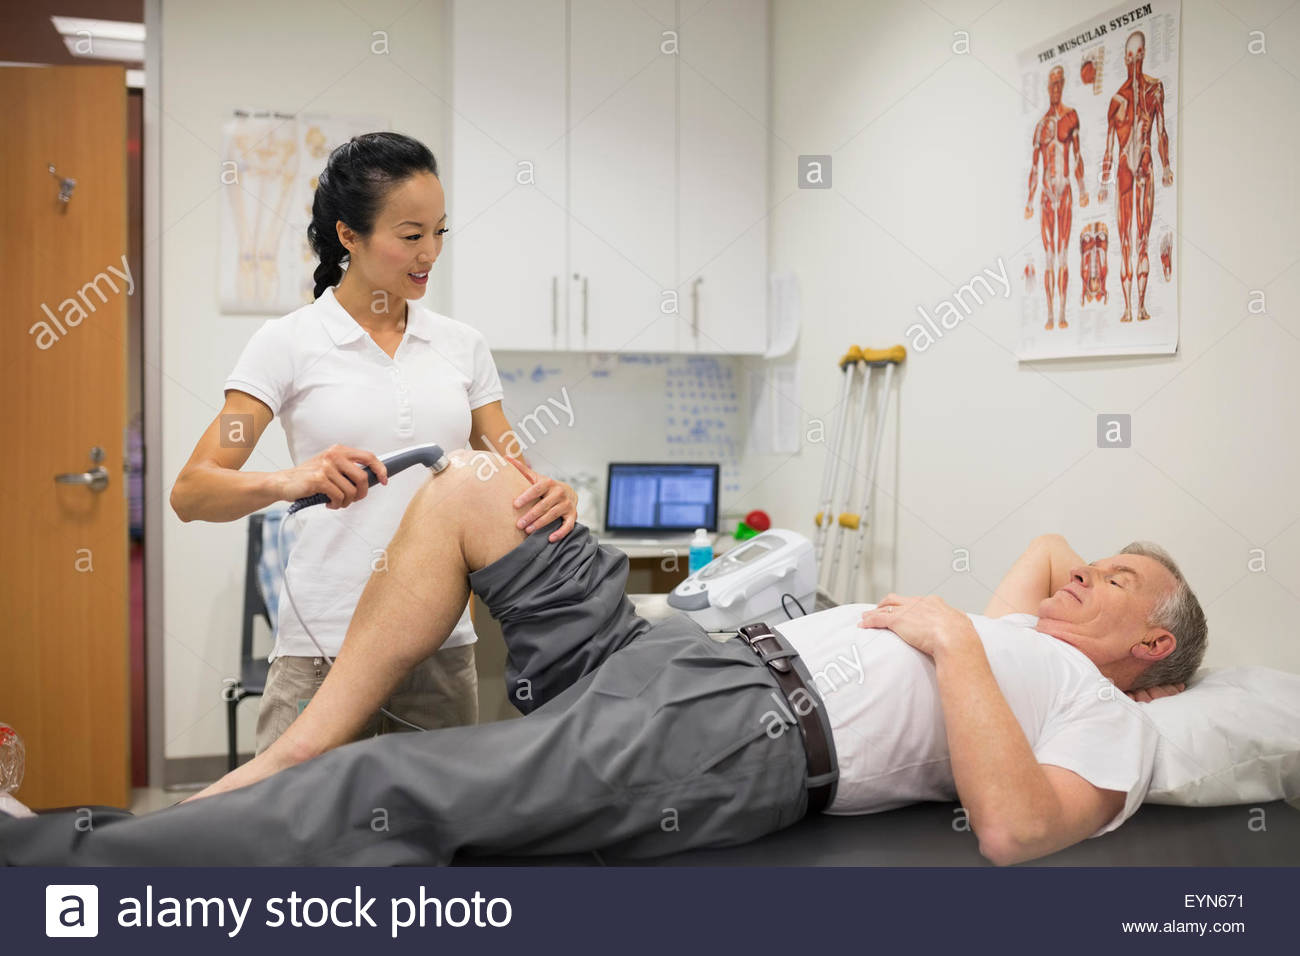 Physical therapist using ultrasound probe on patient knee Stock Photo